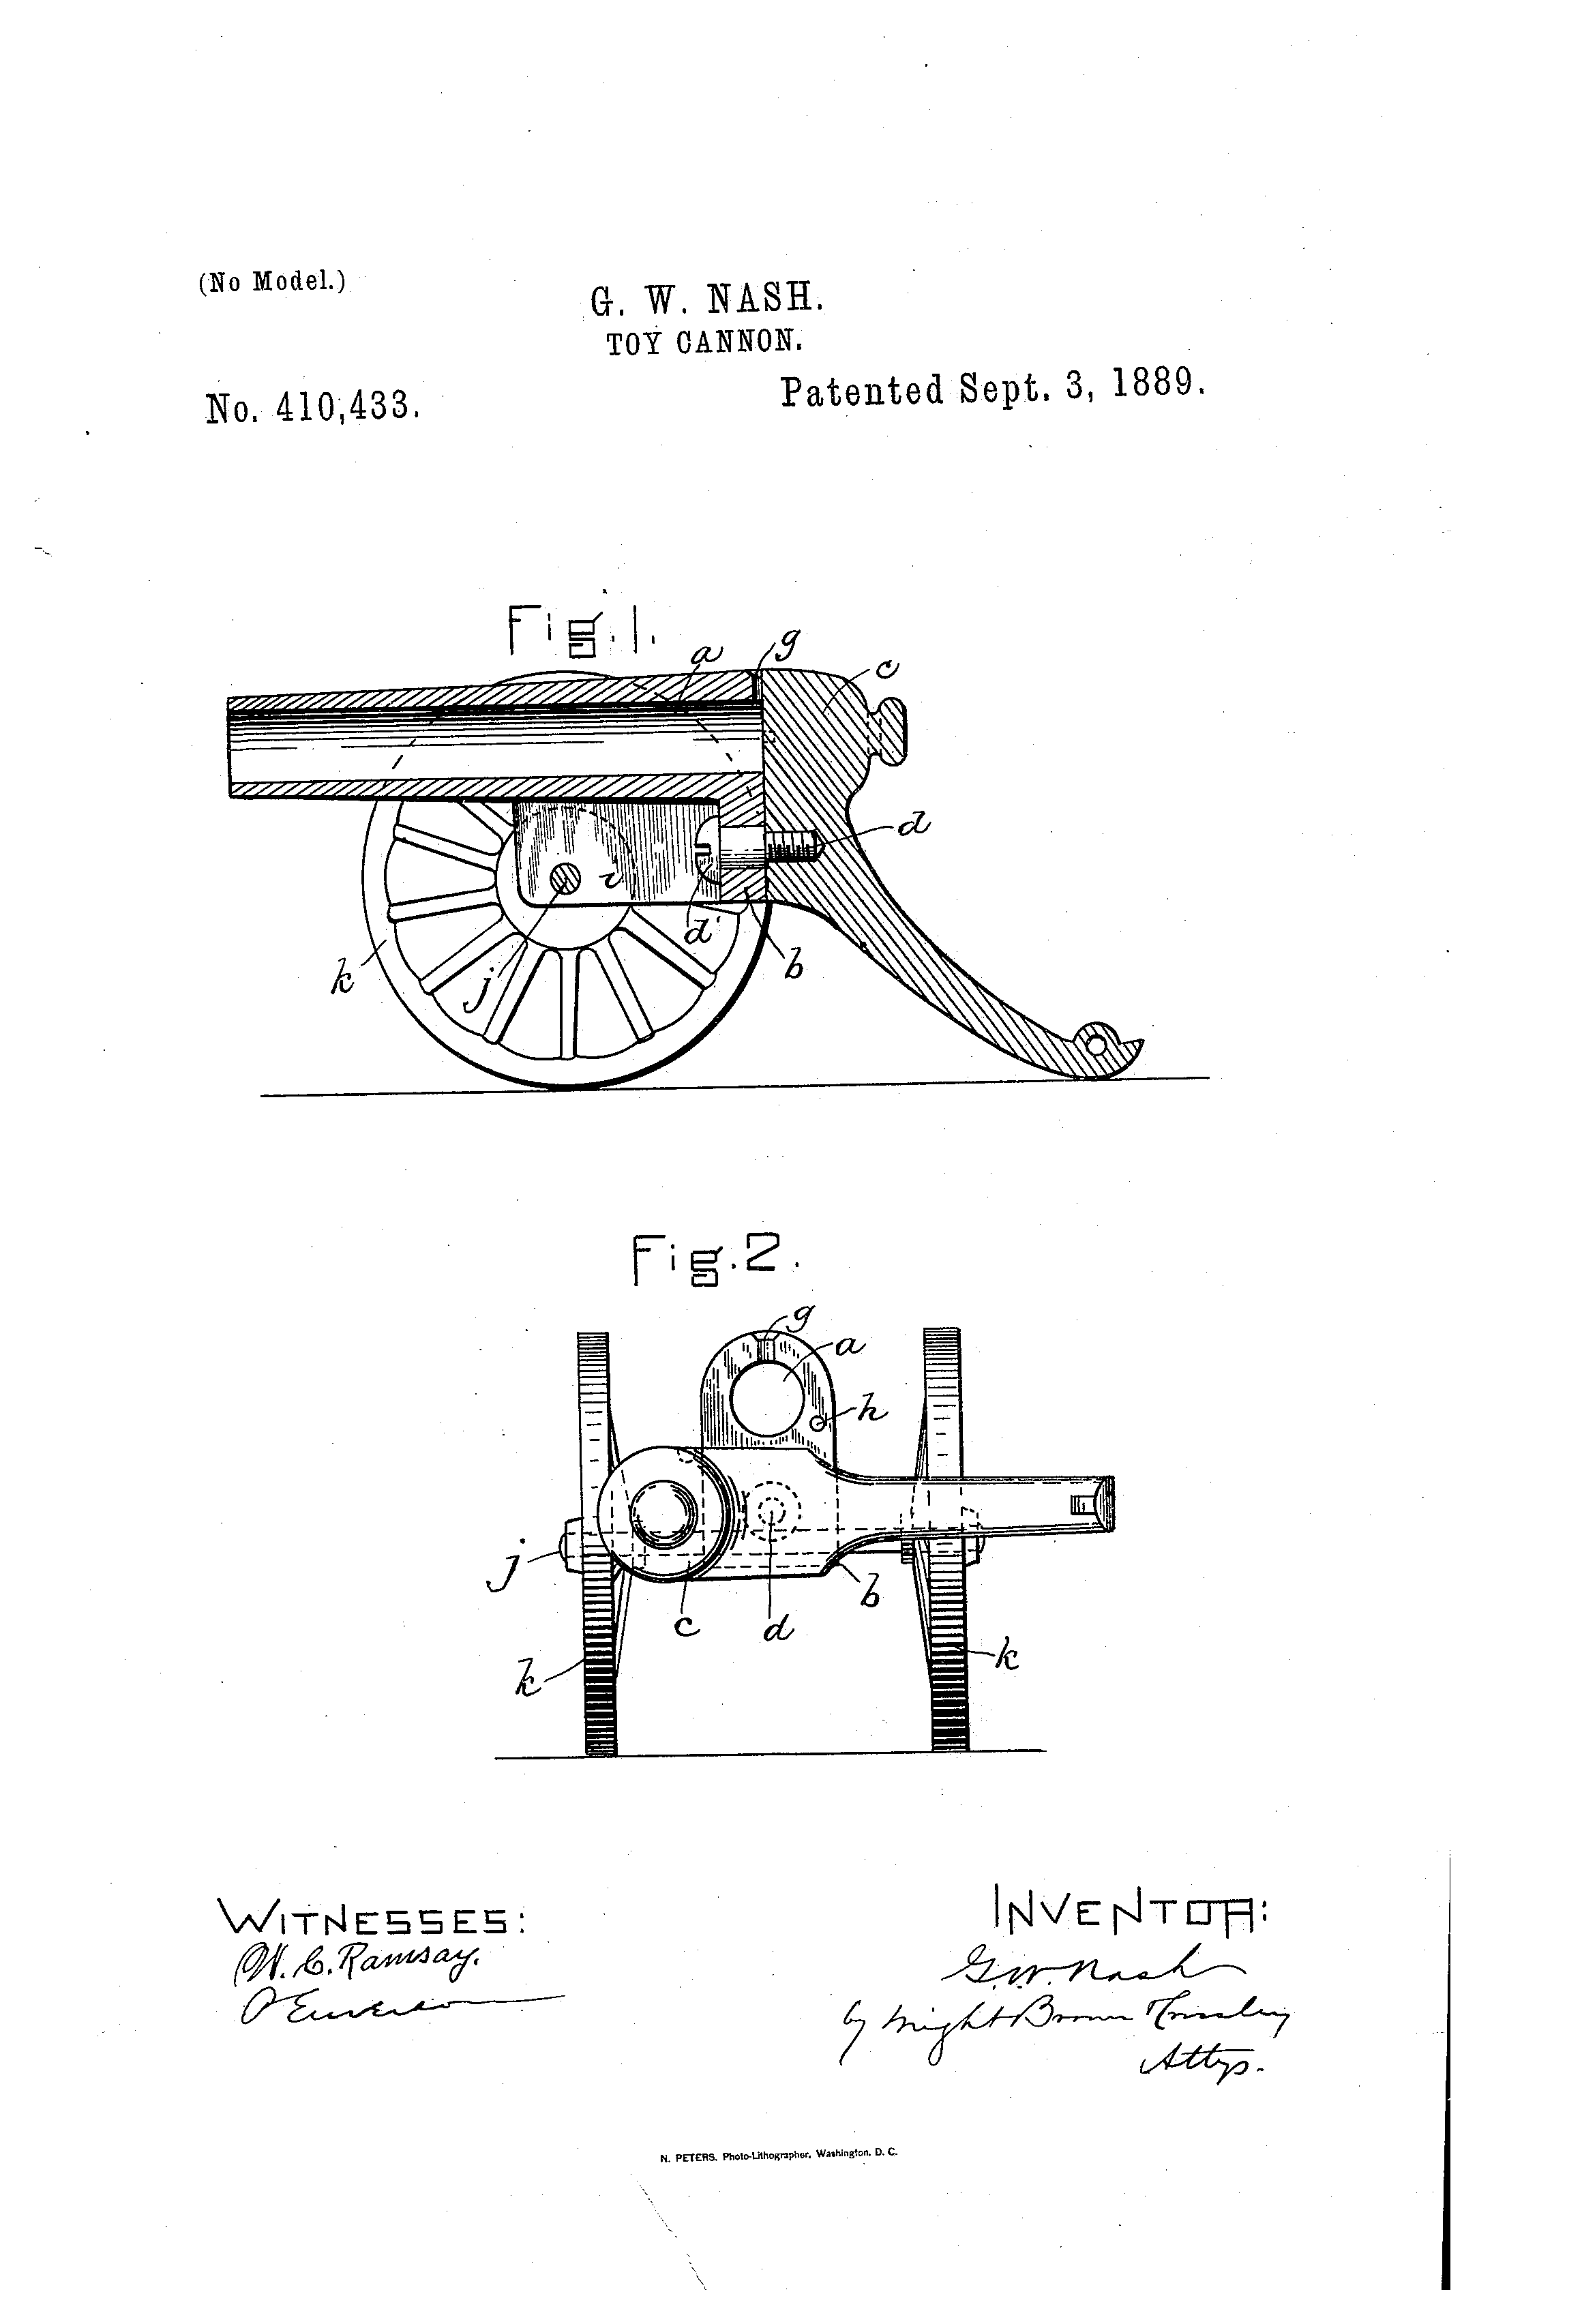 Toy cannon US 410433 A Accessed via Google Patent Search